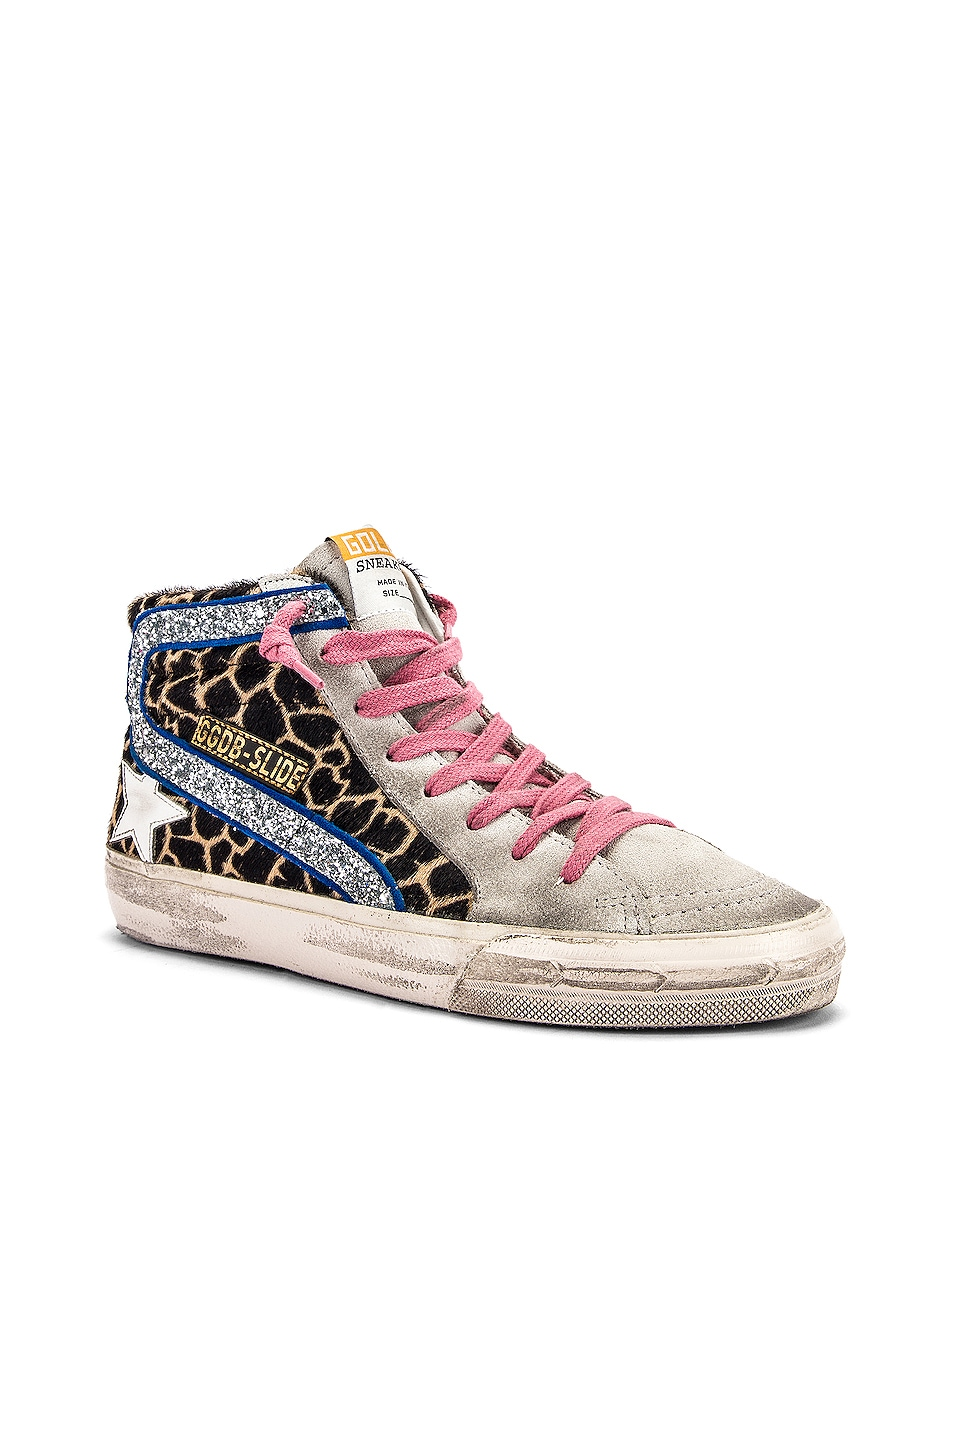 Image 2 of Golden Goose Slide Sneaker in Animalier & Silver Glitter